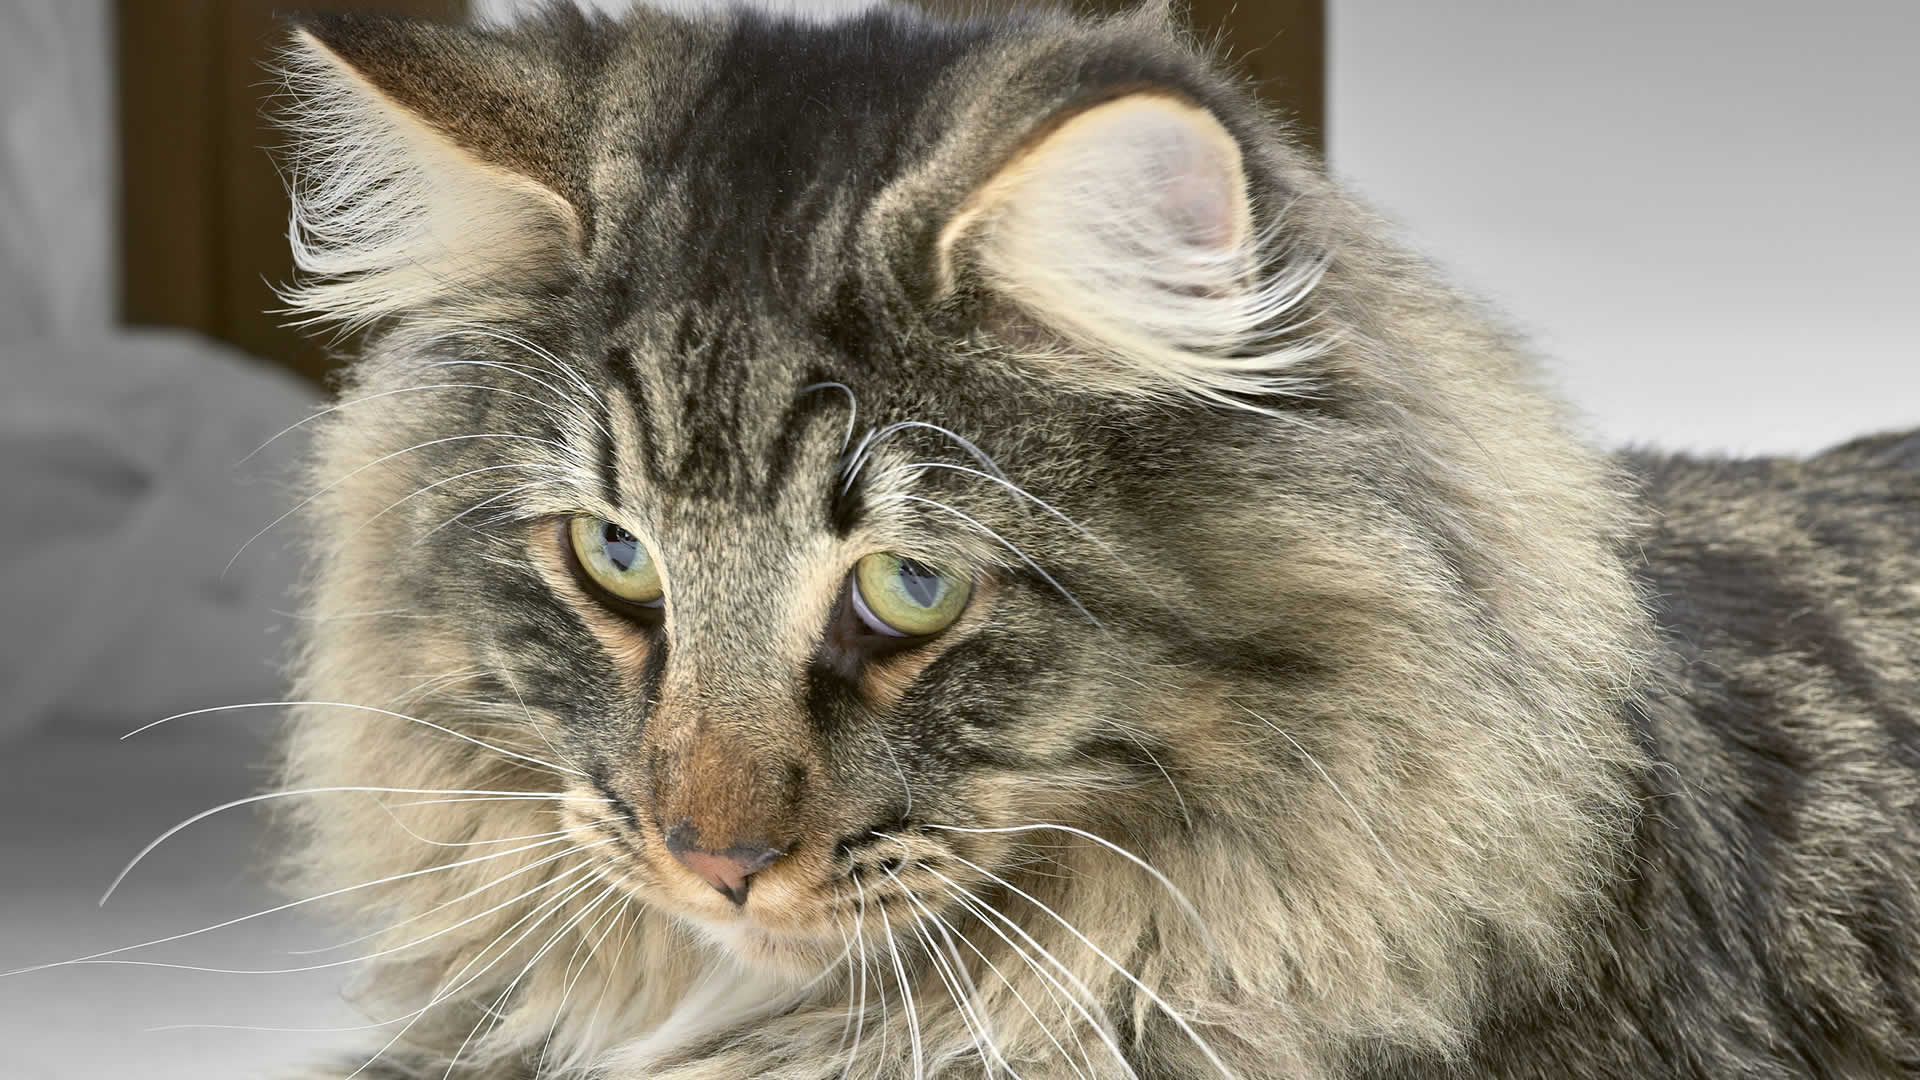 Almond-shaped eyes of Norweigan Forest Cats can be golden yellow